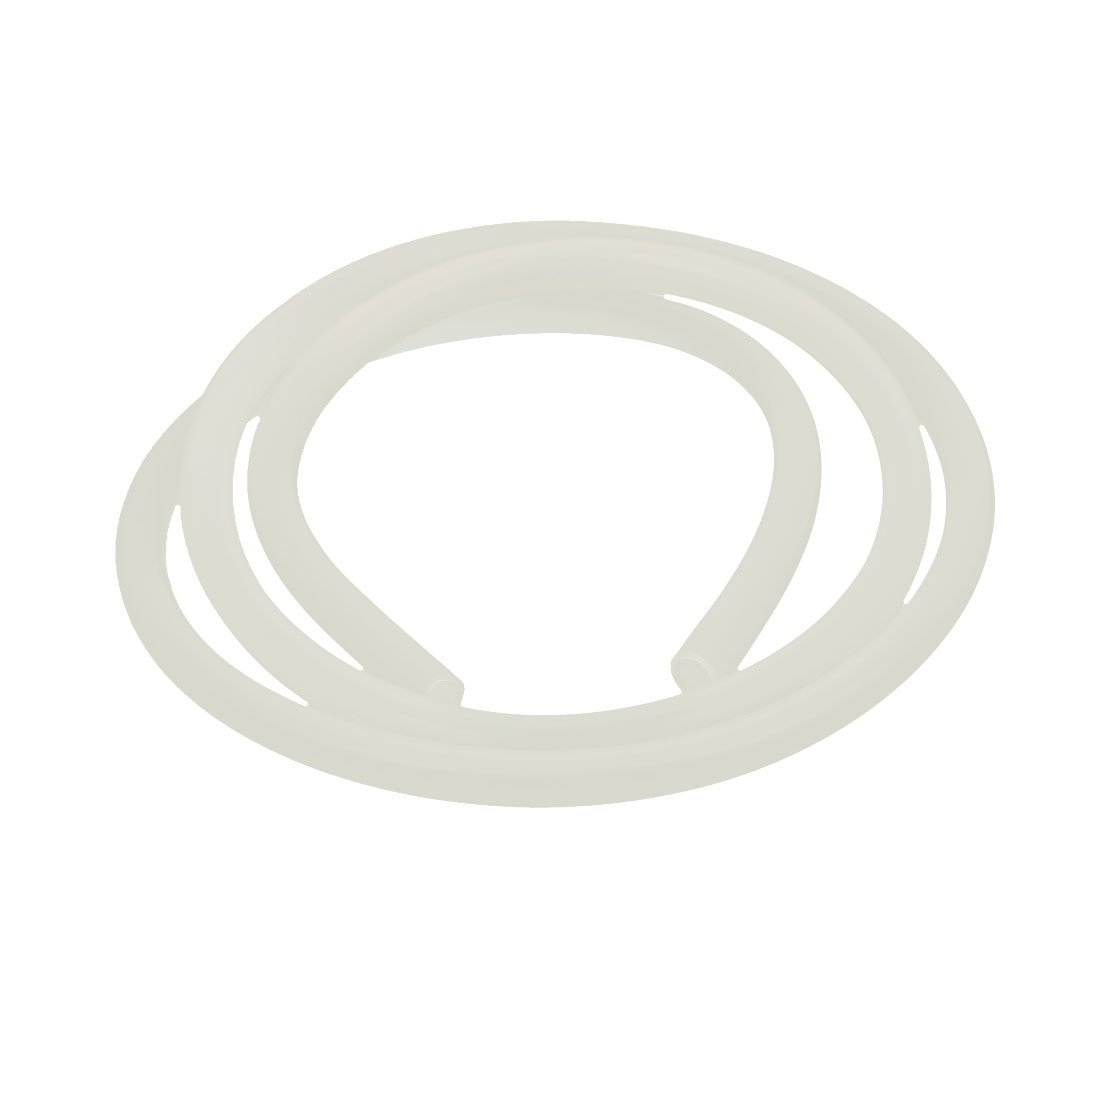 uxcell 6mm x 8mm Beige Silicone Tube Water Air Pump Hose Pipe 1M Length